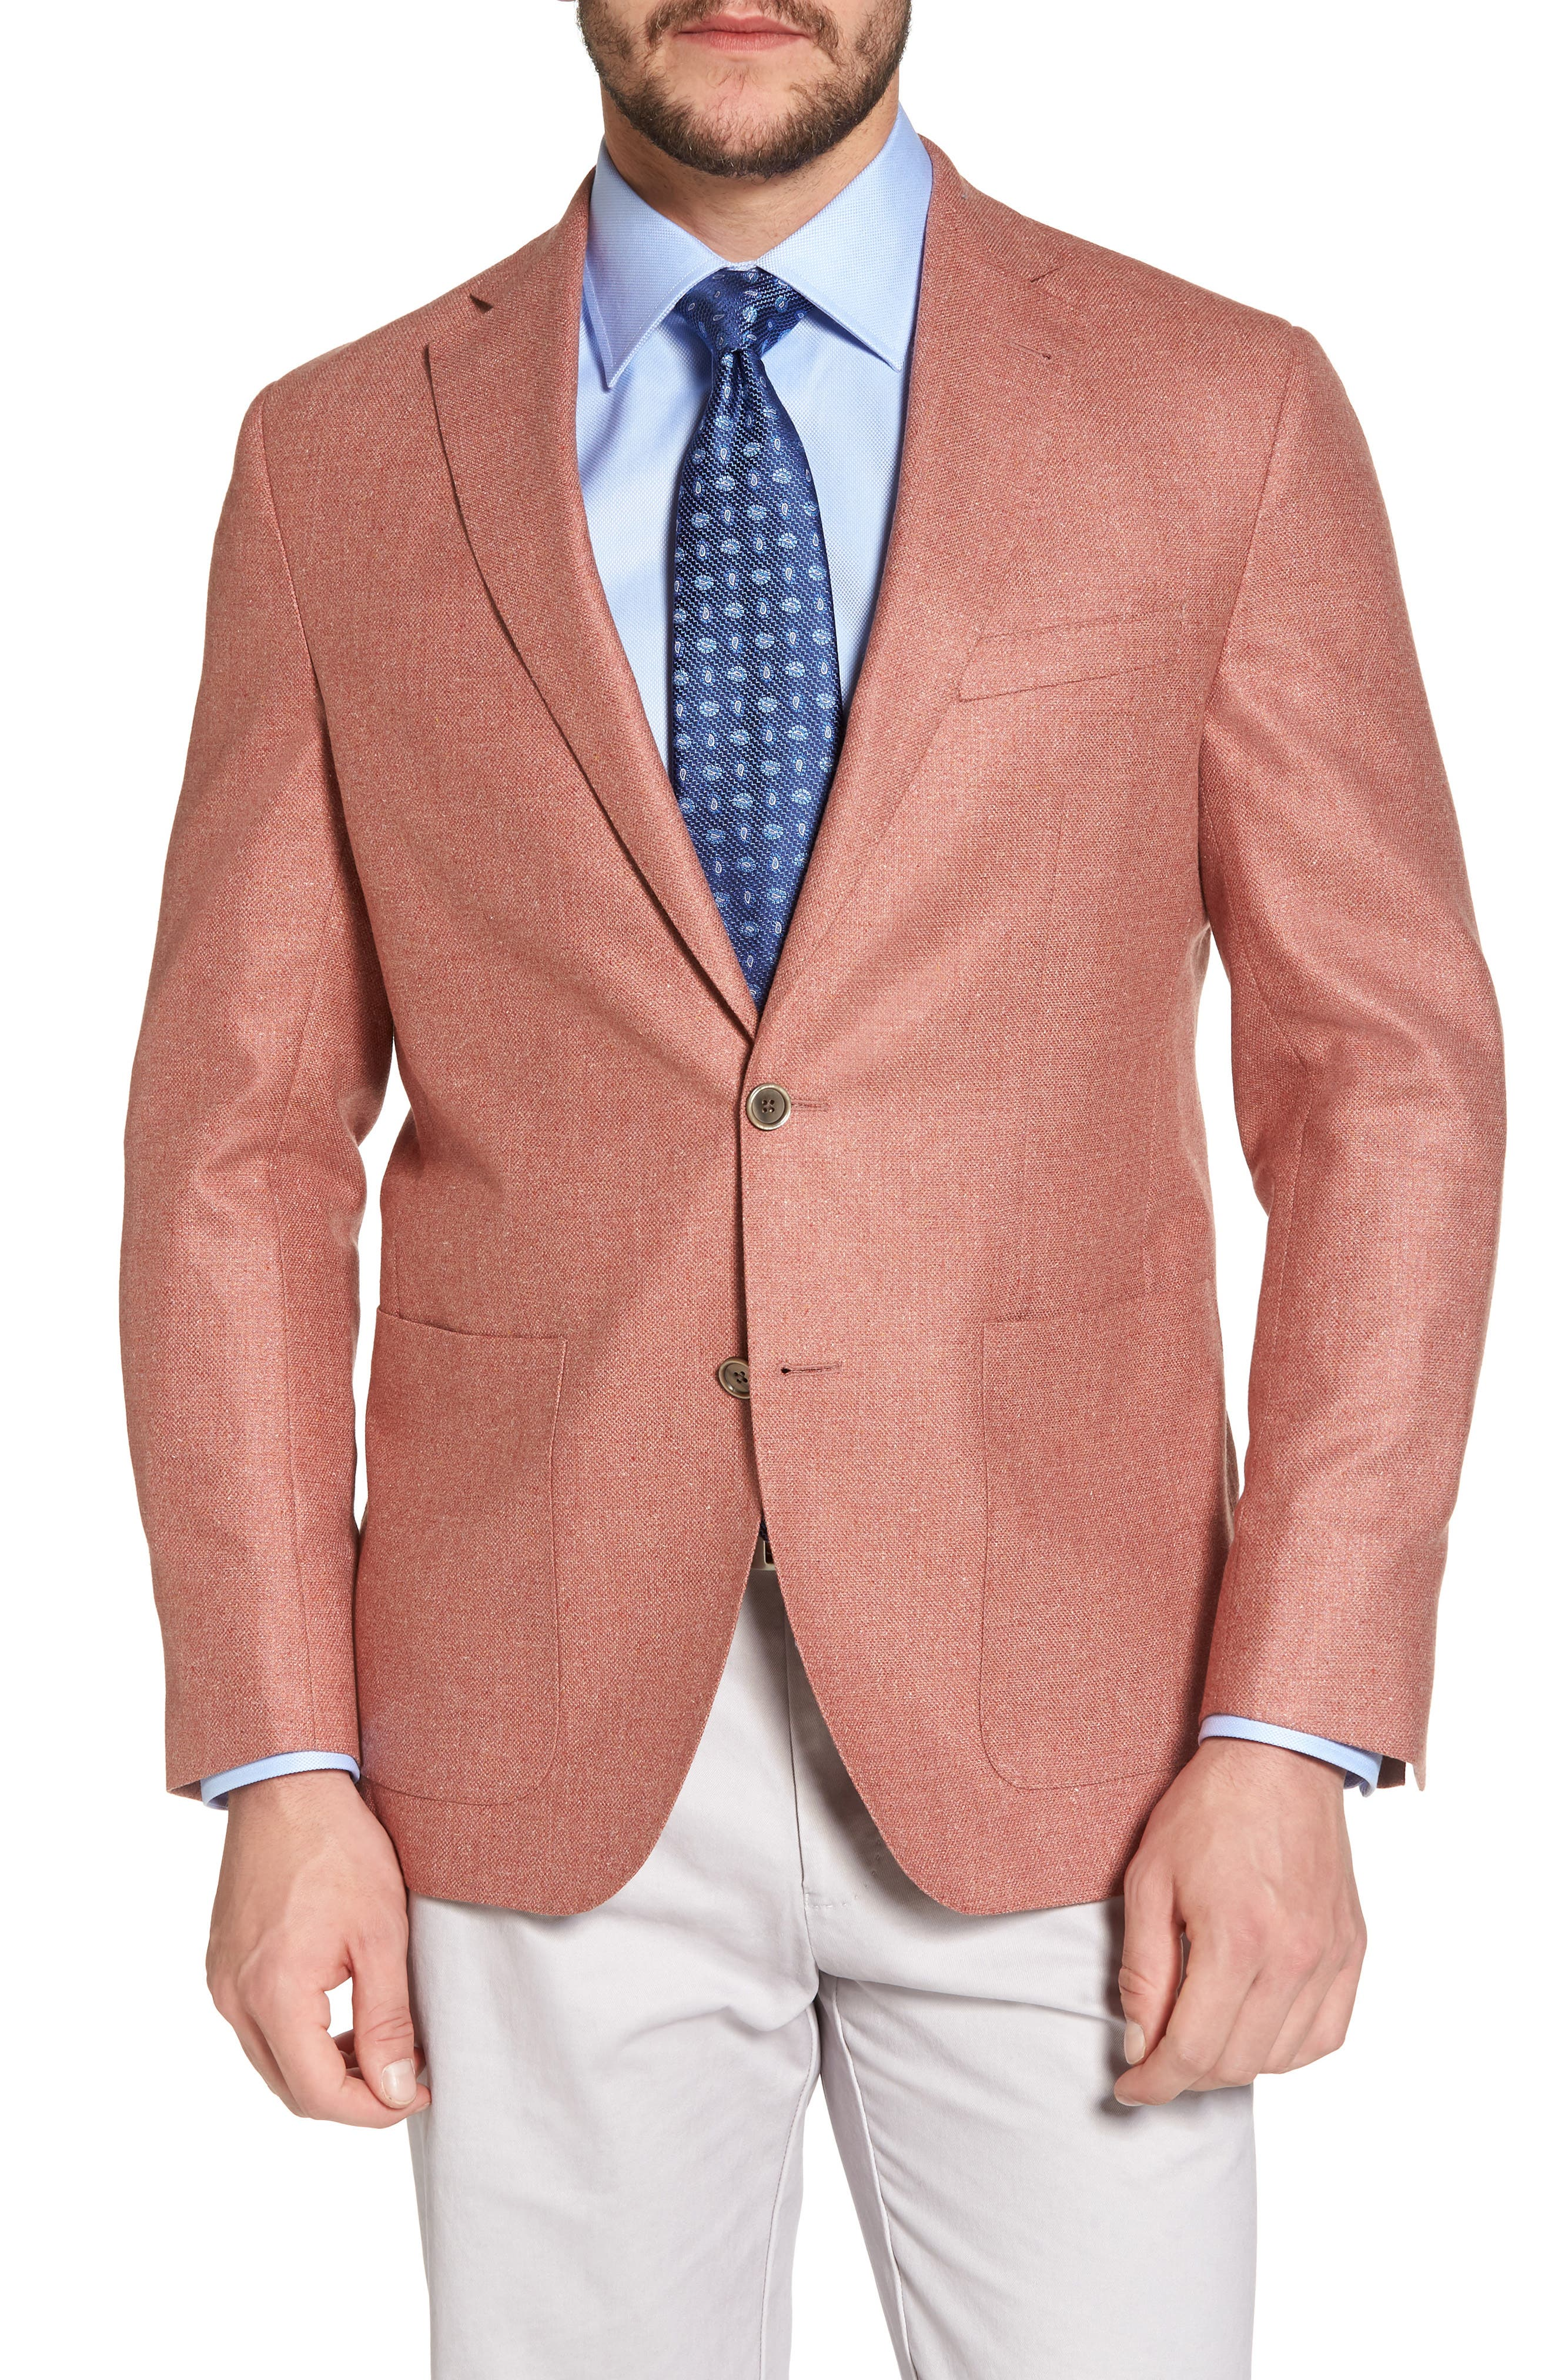 Aiden Classic Fit Silk & Wool Blazer,                             Main thumbnail 1, color,                             950